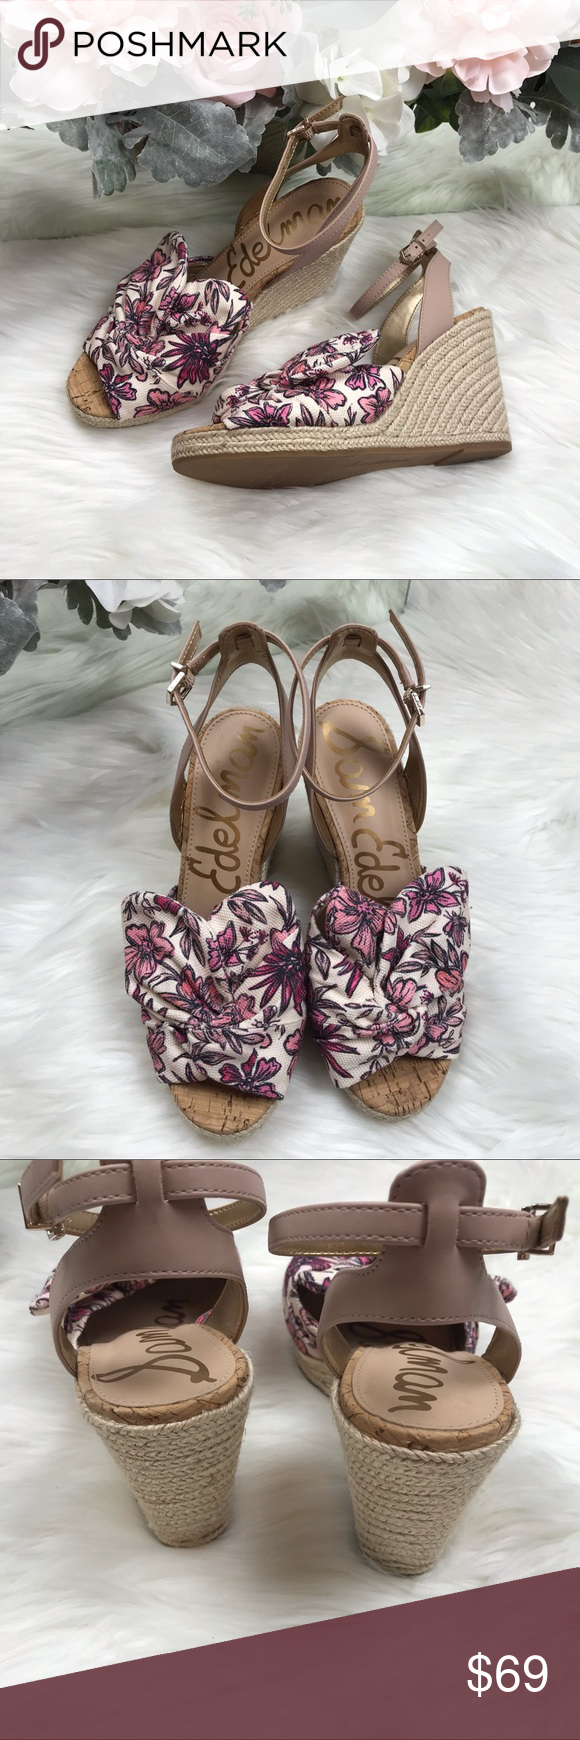 825ce93c21ad Sam Edelman Pink Aubrey Wedge Sandals Sz 8 NWOB Sam Edelman Pink Aubrey  Wedge Sandals Sz